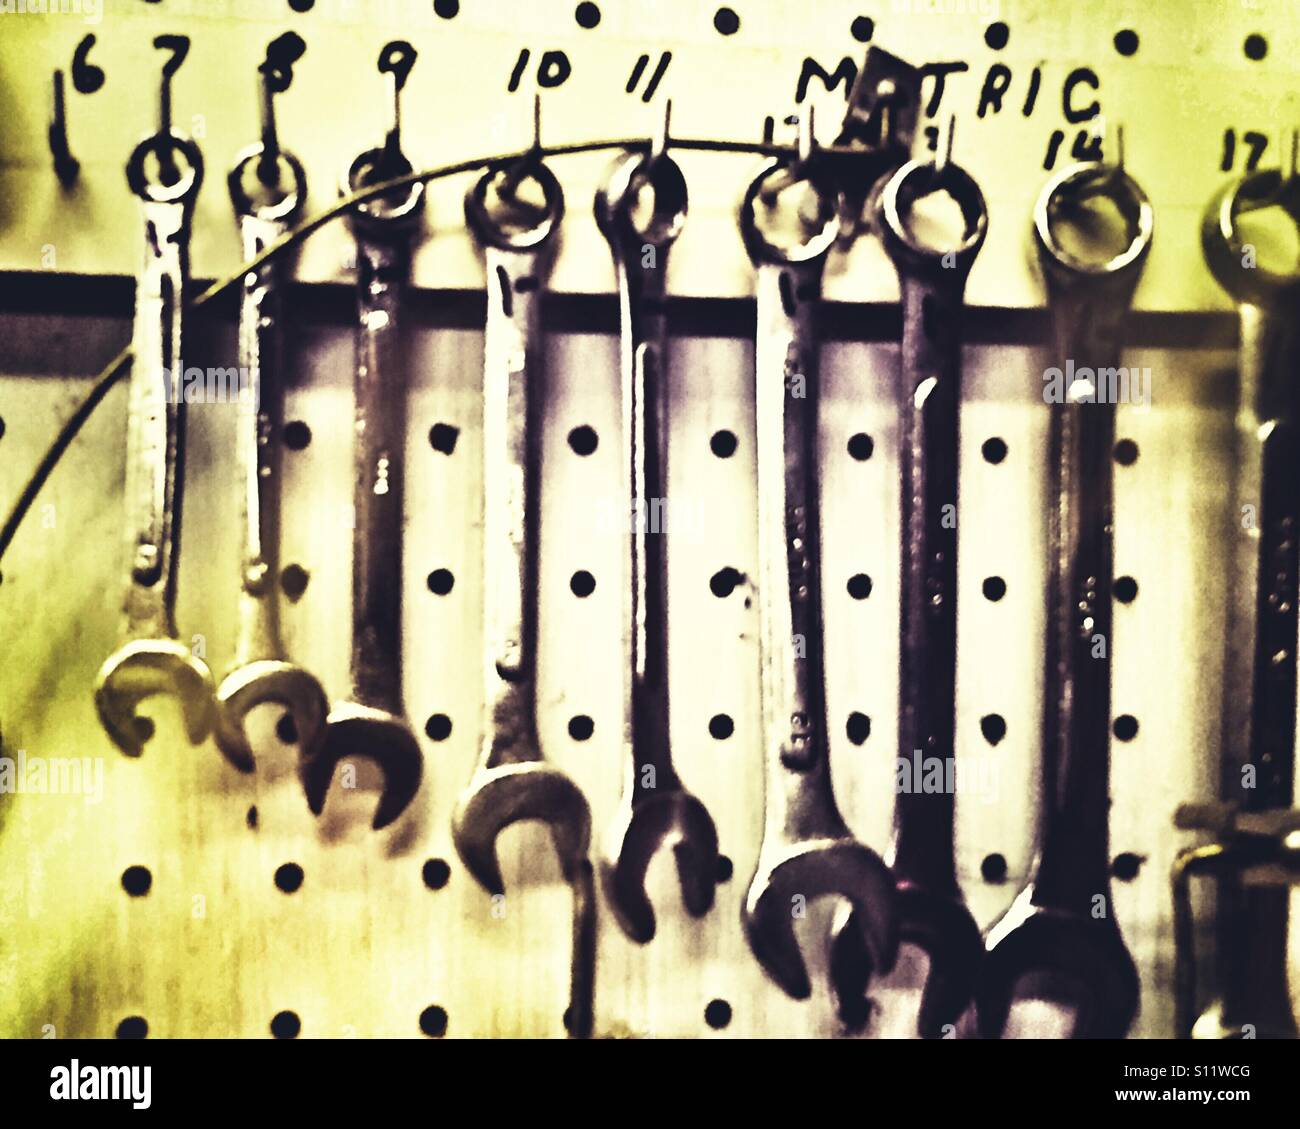 Wrenches on a pegboard - Stock Image